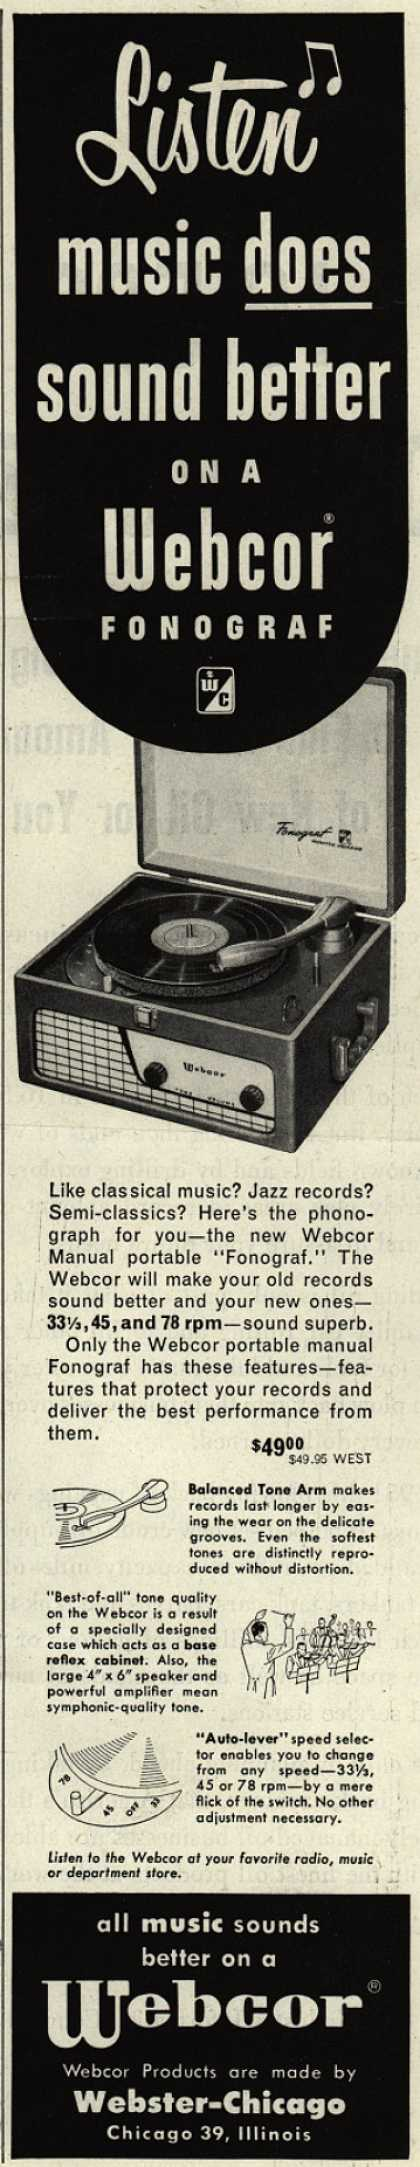 Webster-Chicago Corporation's Fonograf – Listen, music does sound better on a Webcor Fonograf (1952)